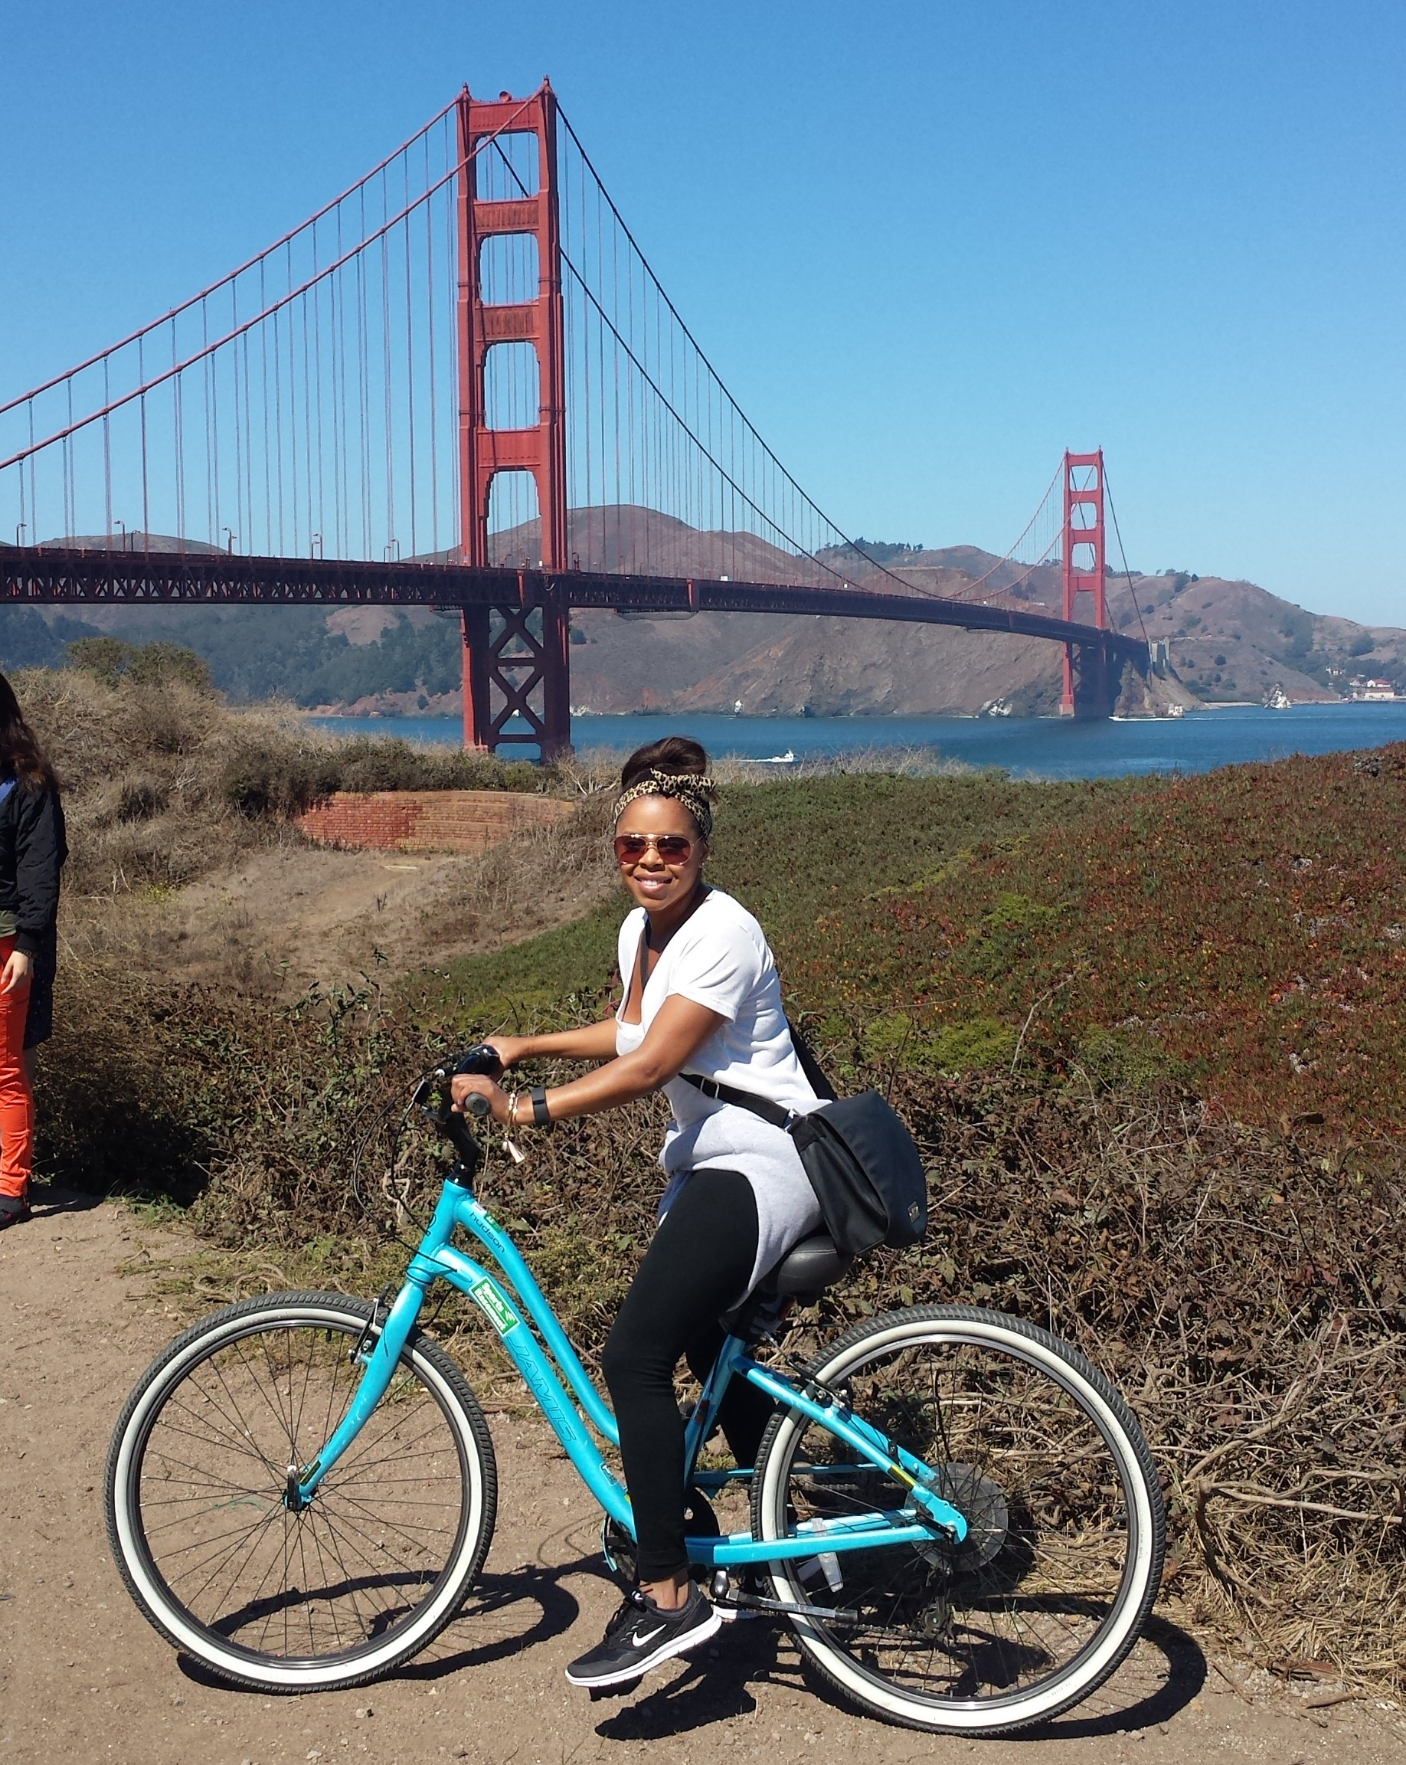 Rode across   the Golden Gate B  ridge . An unplanned 4 hours of walking and bike riding. Over 25,000 steps on my Fitbit that day